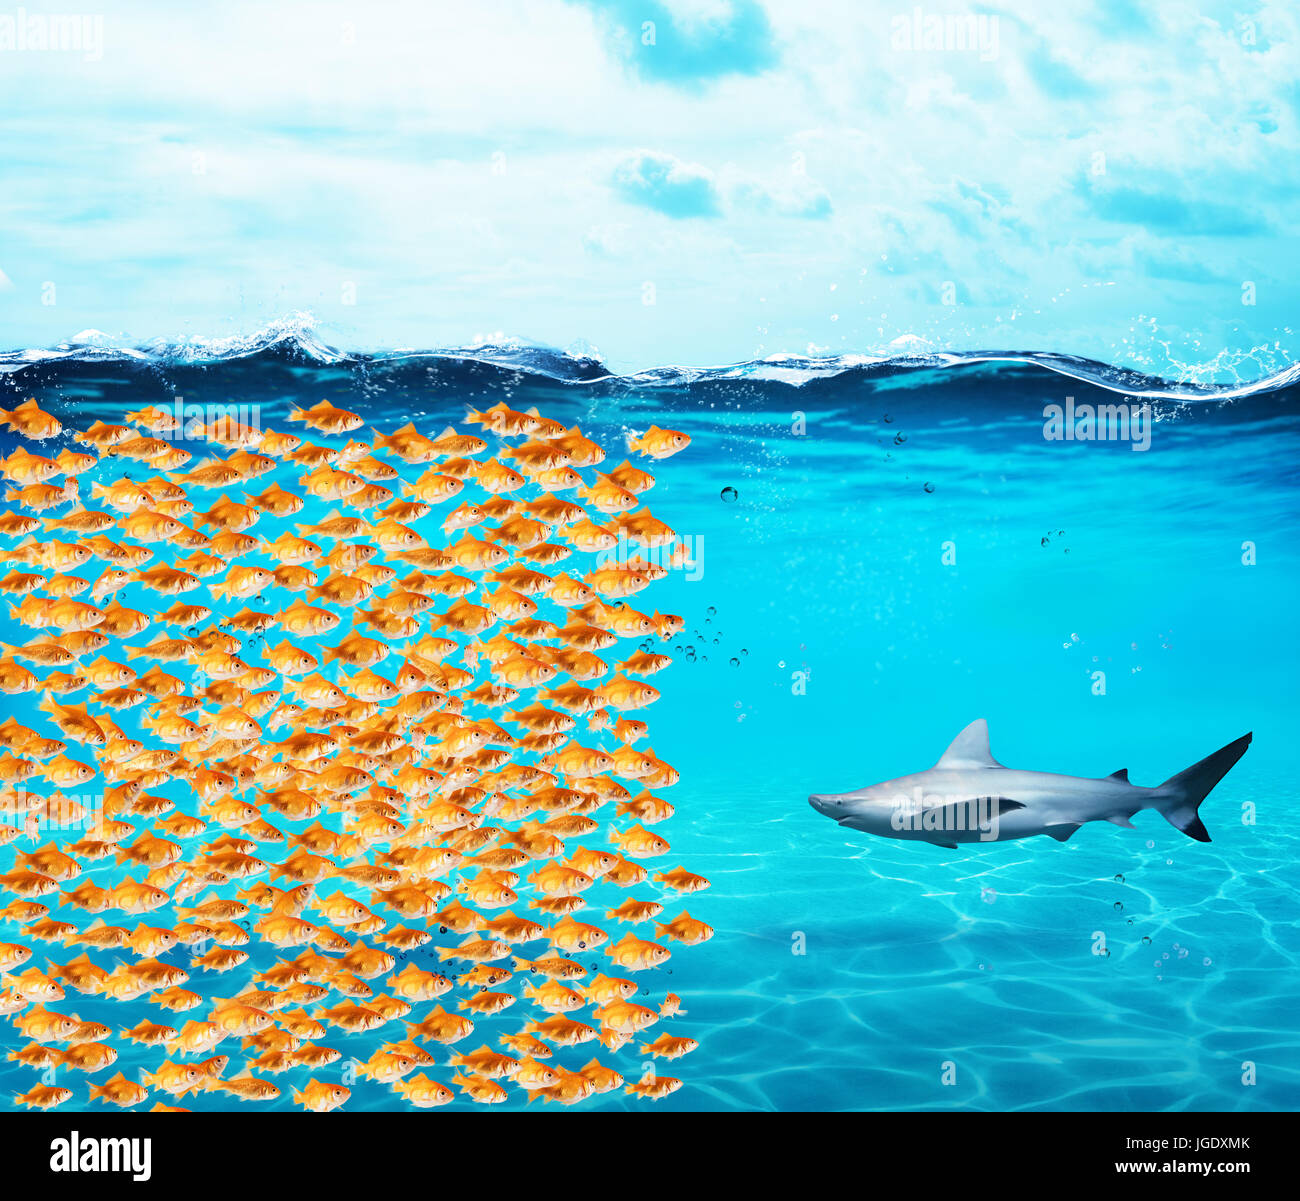 Goldfishes group make a wall against the shark. Concept of unity is strenght, teamwork and partnership - Stock Image